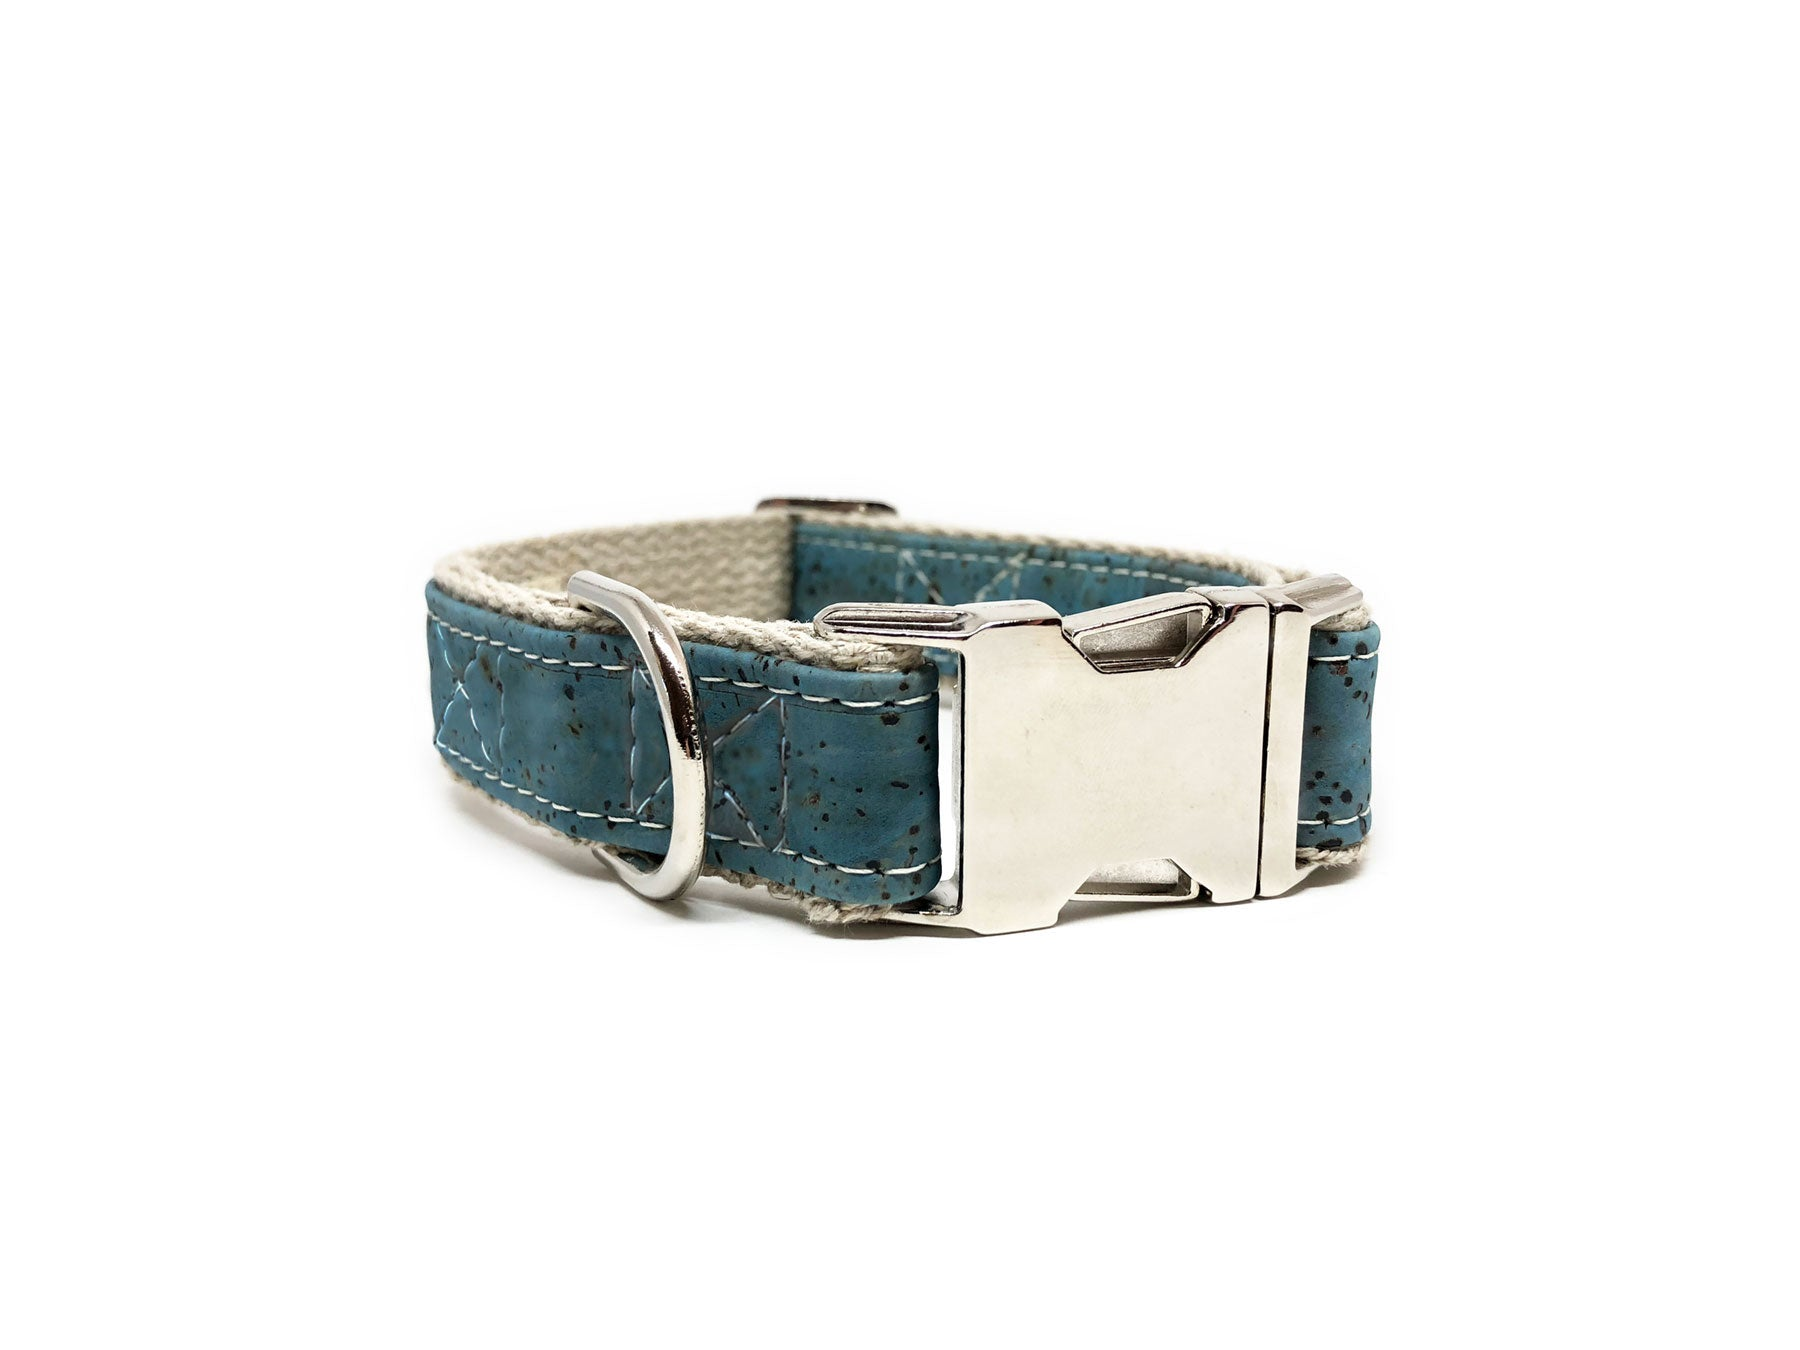 Signature Natural Cork Leather Dog Collar in Ocean Blue